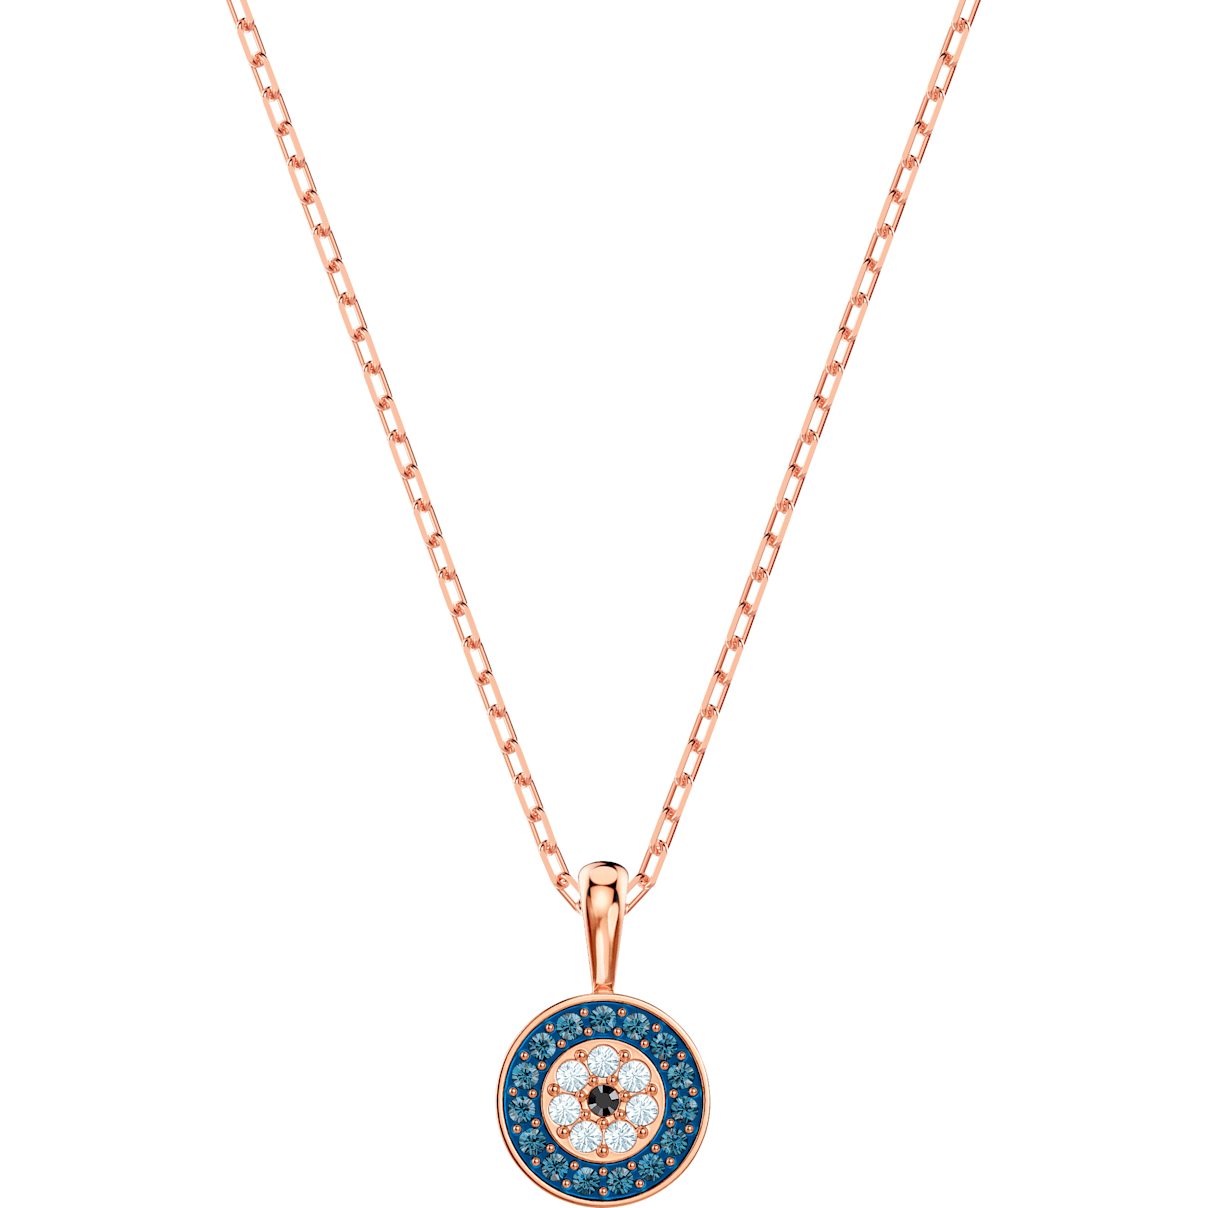 Swarovski Luckily Pendant, Multi-colored, Rose-gold tone plated